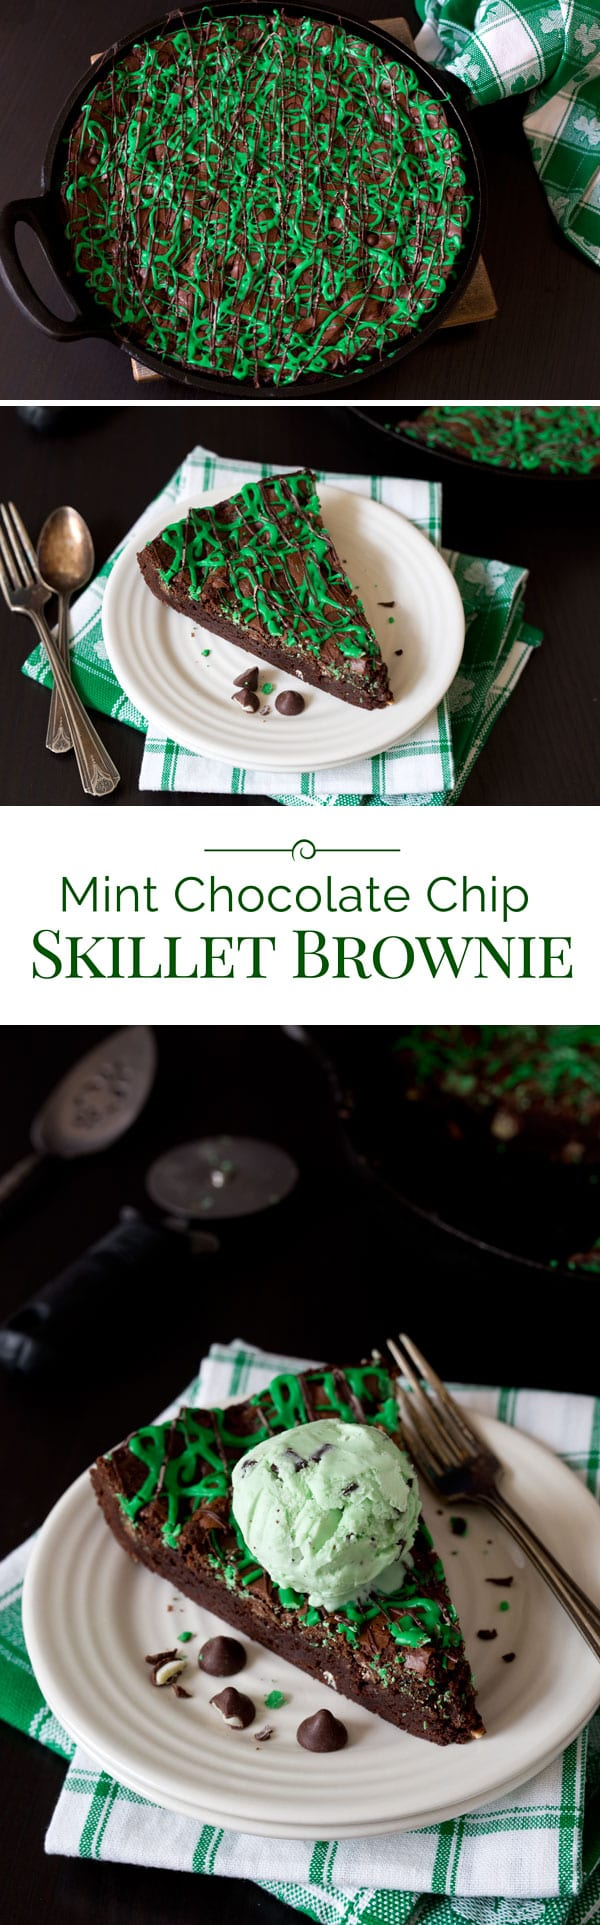 A rich, fudgy Mint Chocolate Chip Skillet Brownie studded with big chocolate chips with a creamy mint center, drizzled with green and chocolate icing, and served in wedges topped with ice cream.